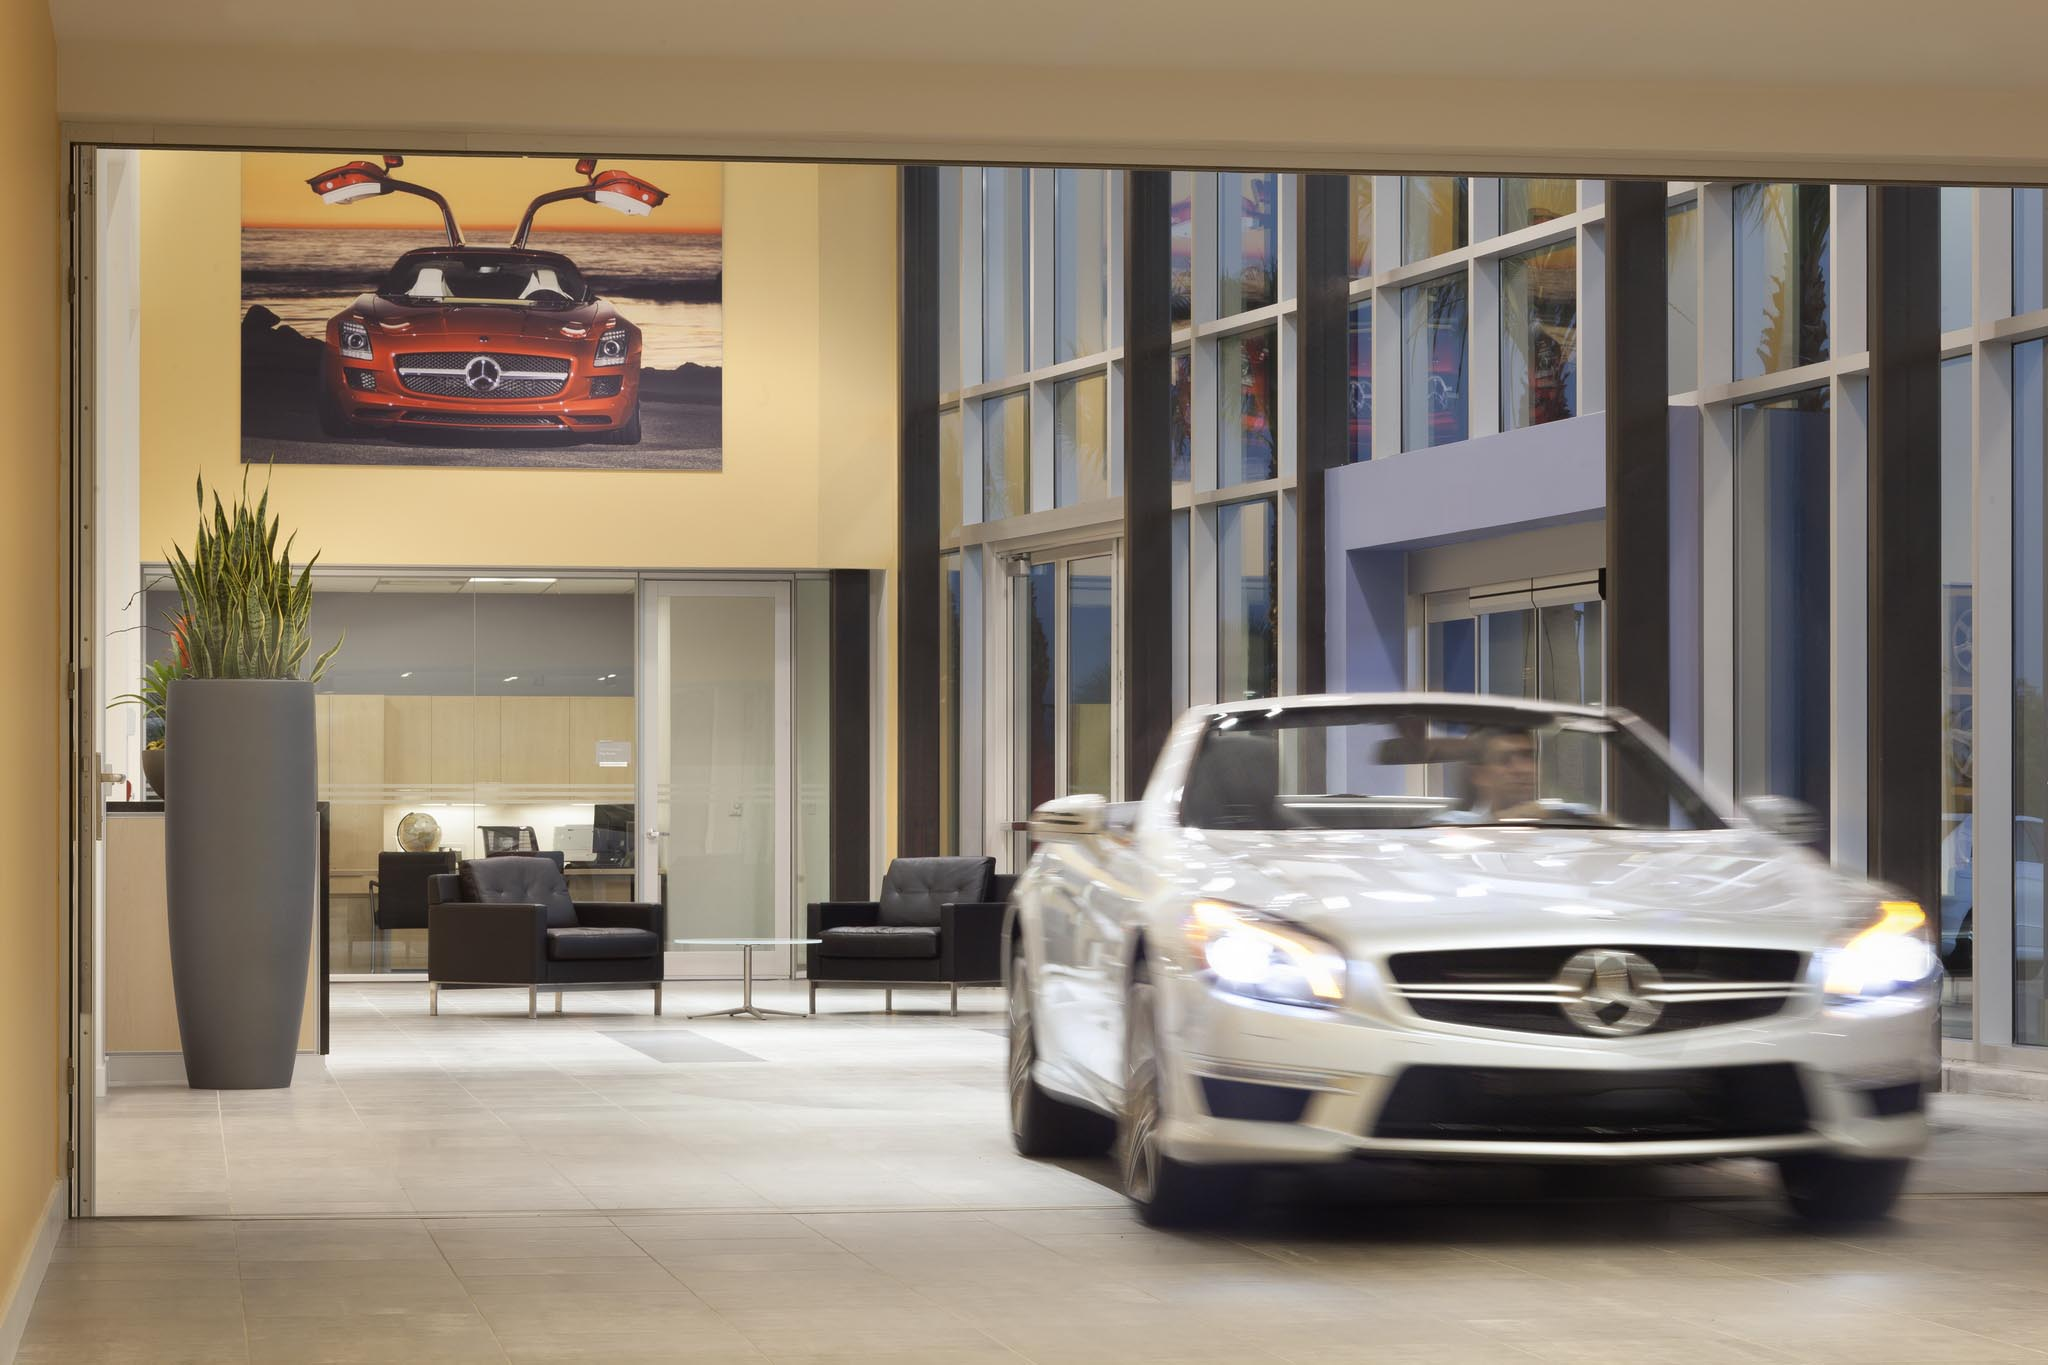 Mercedes benz of ontario gallery nanawall operable for Mercedes benz ontario dealers